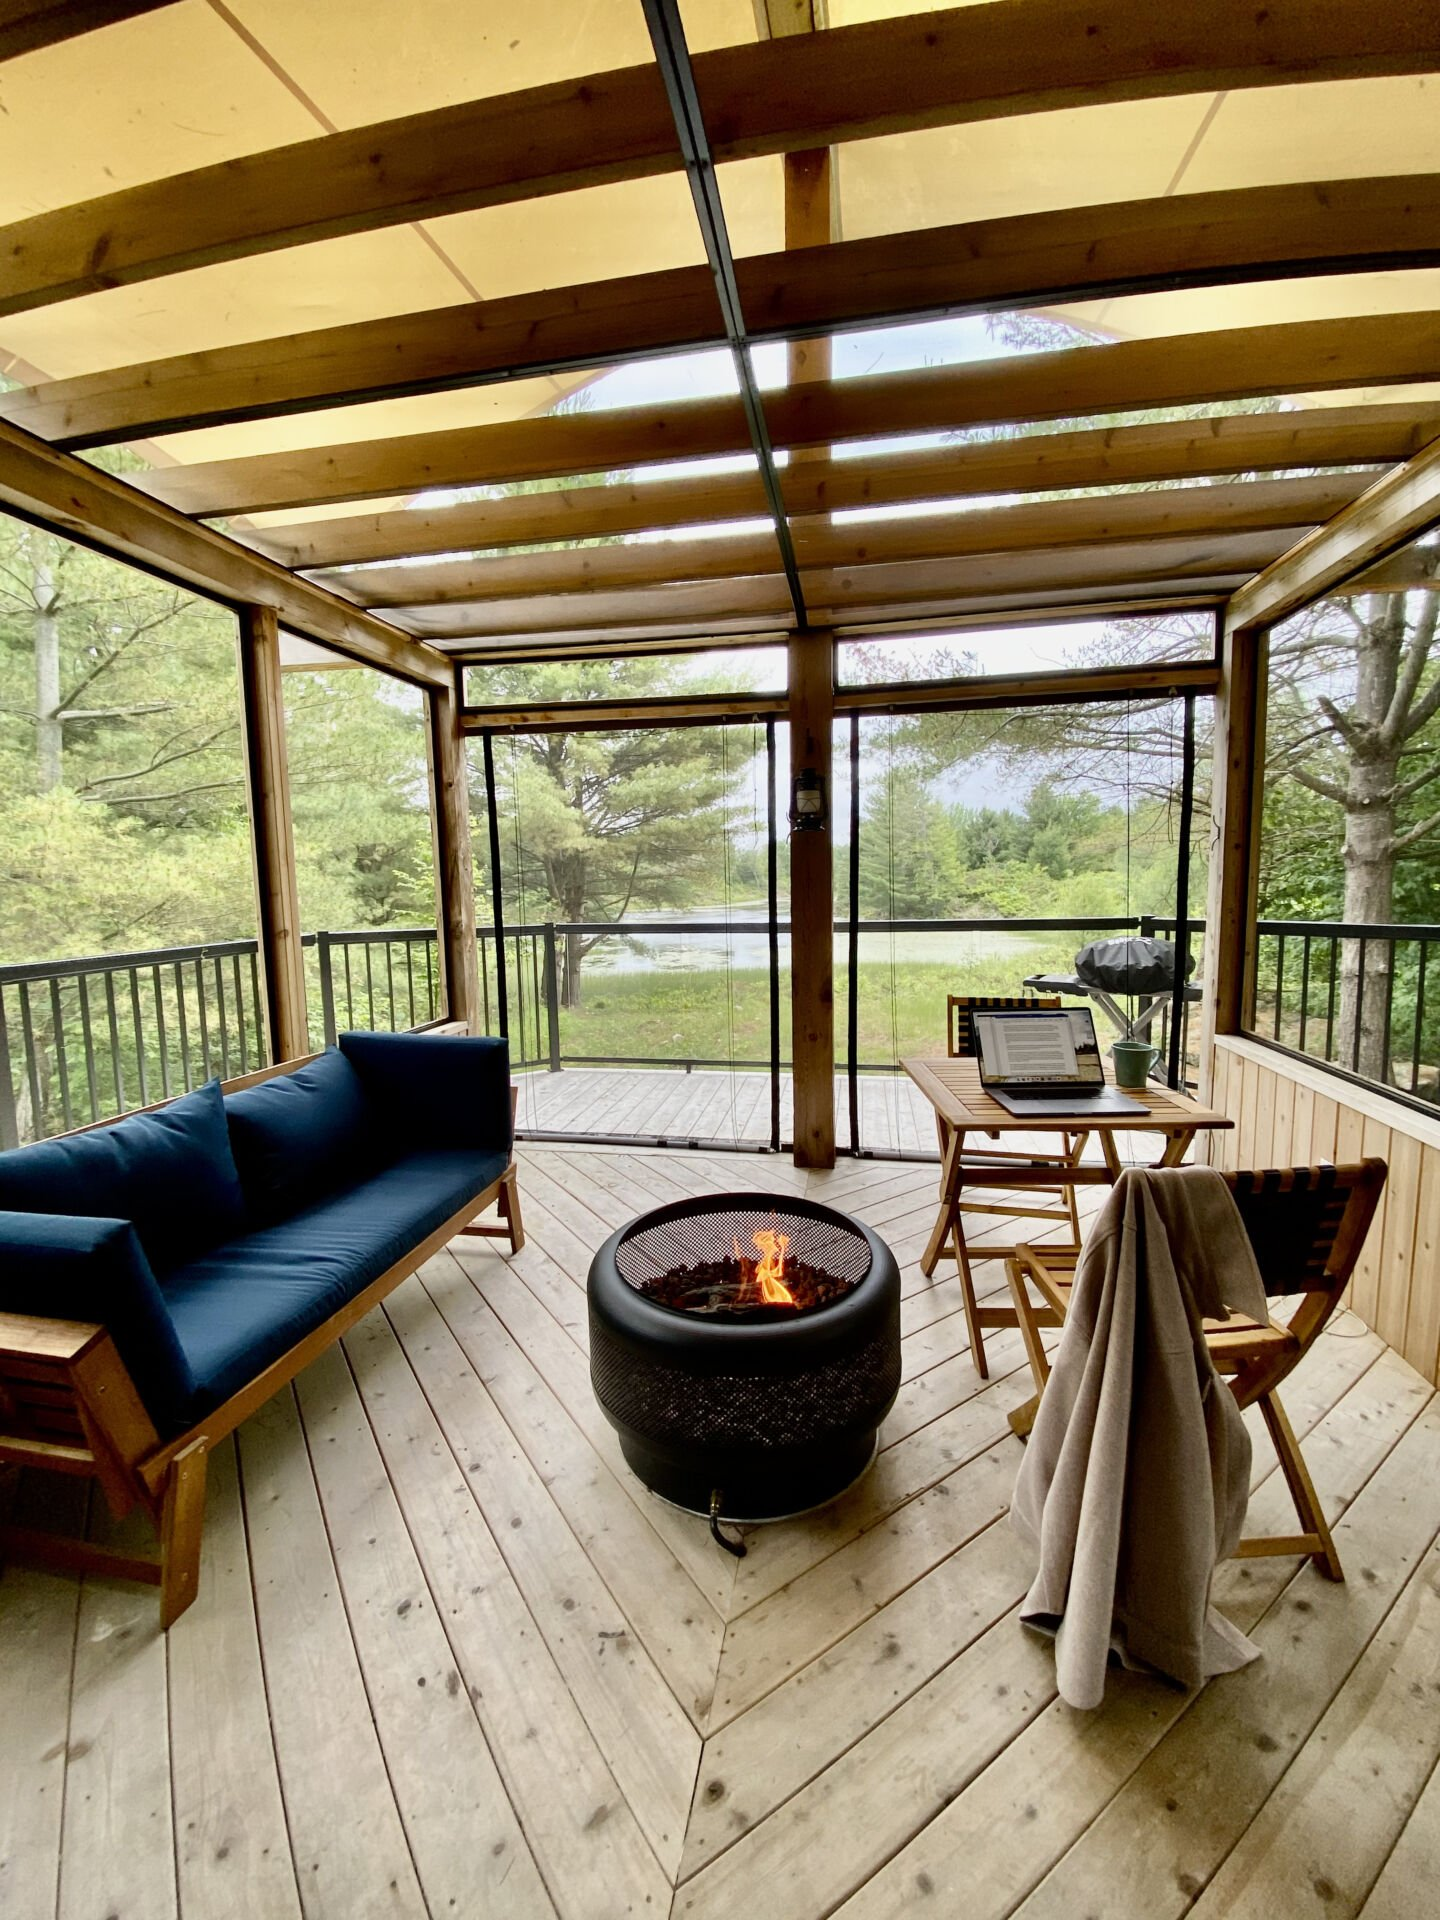 Pine Brae cabins near Perth, On – Guest Experience